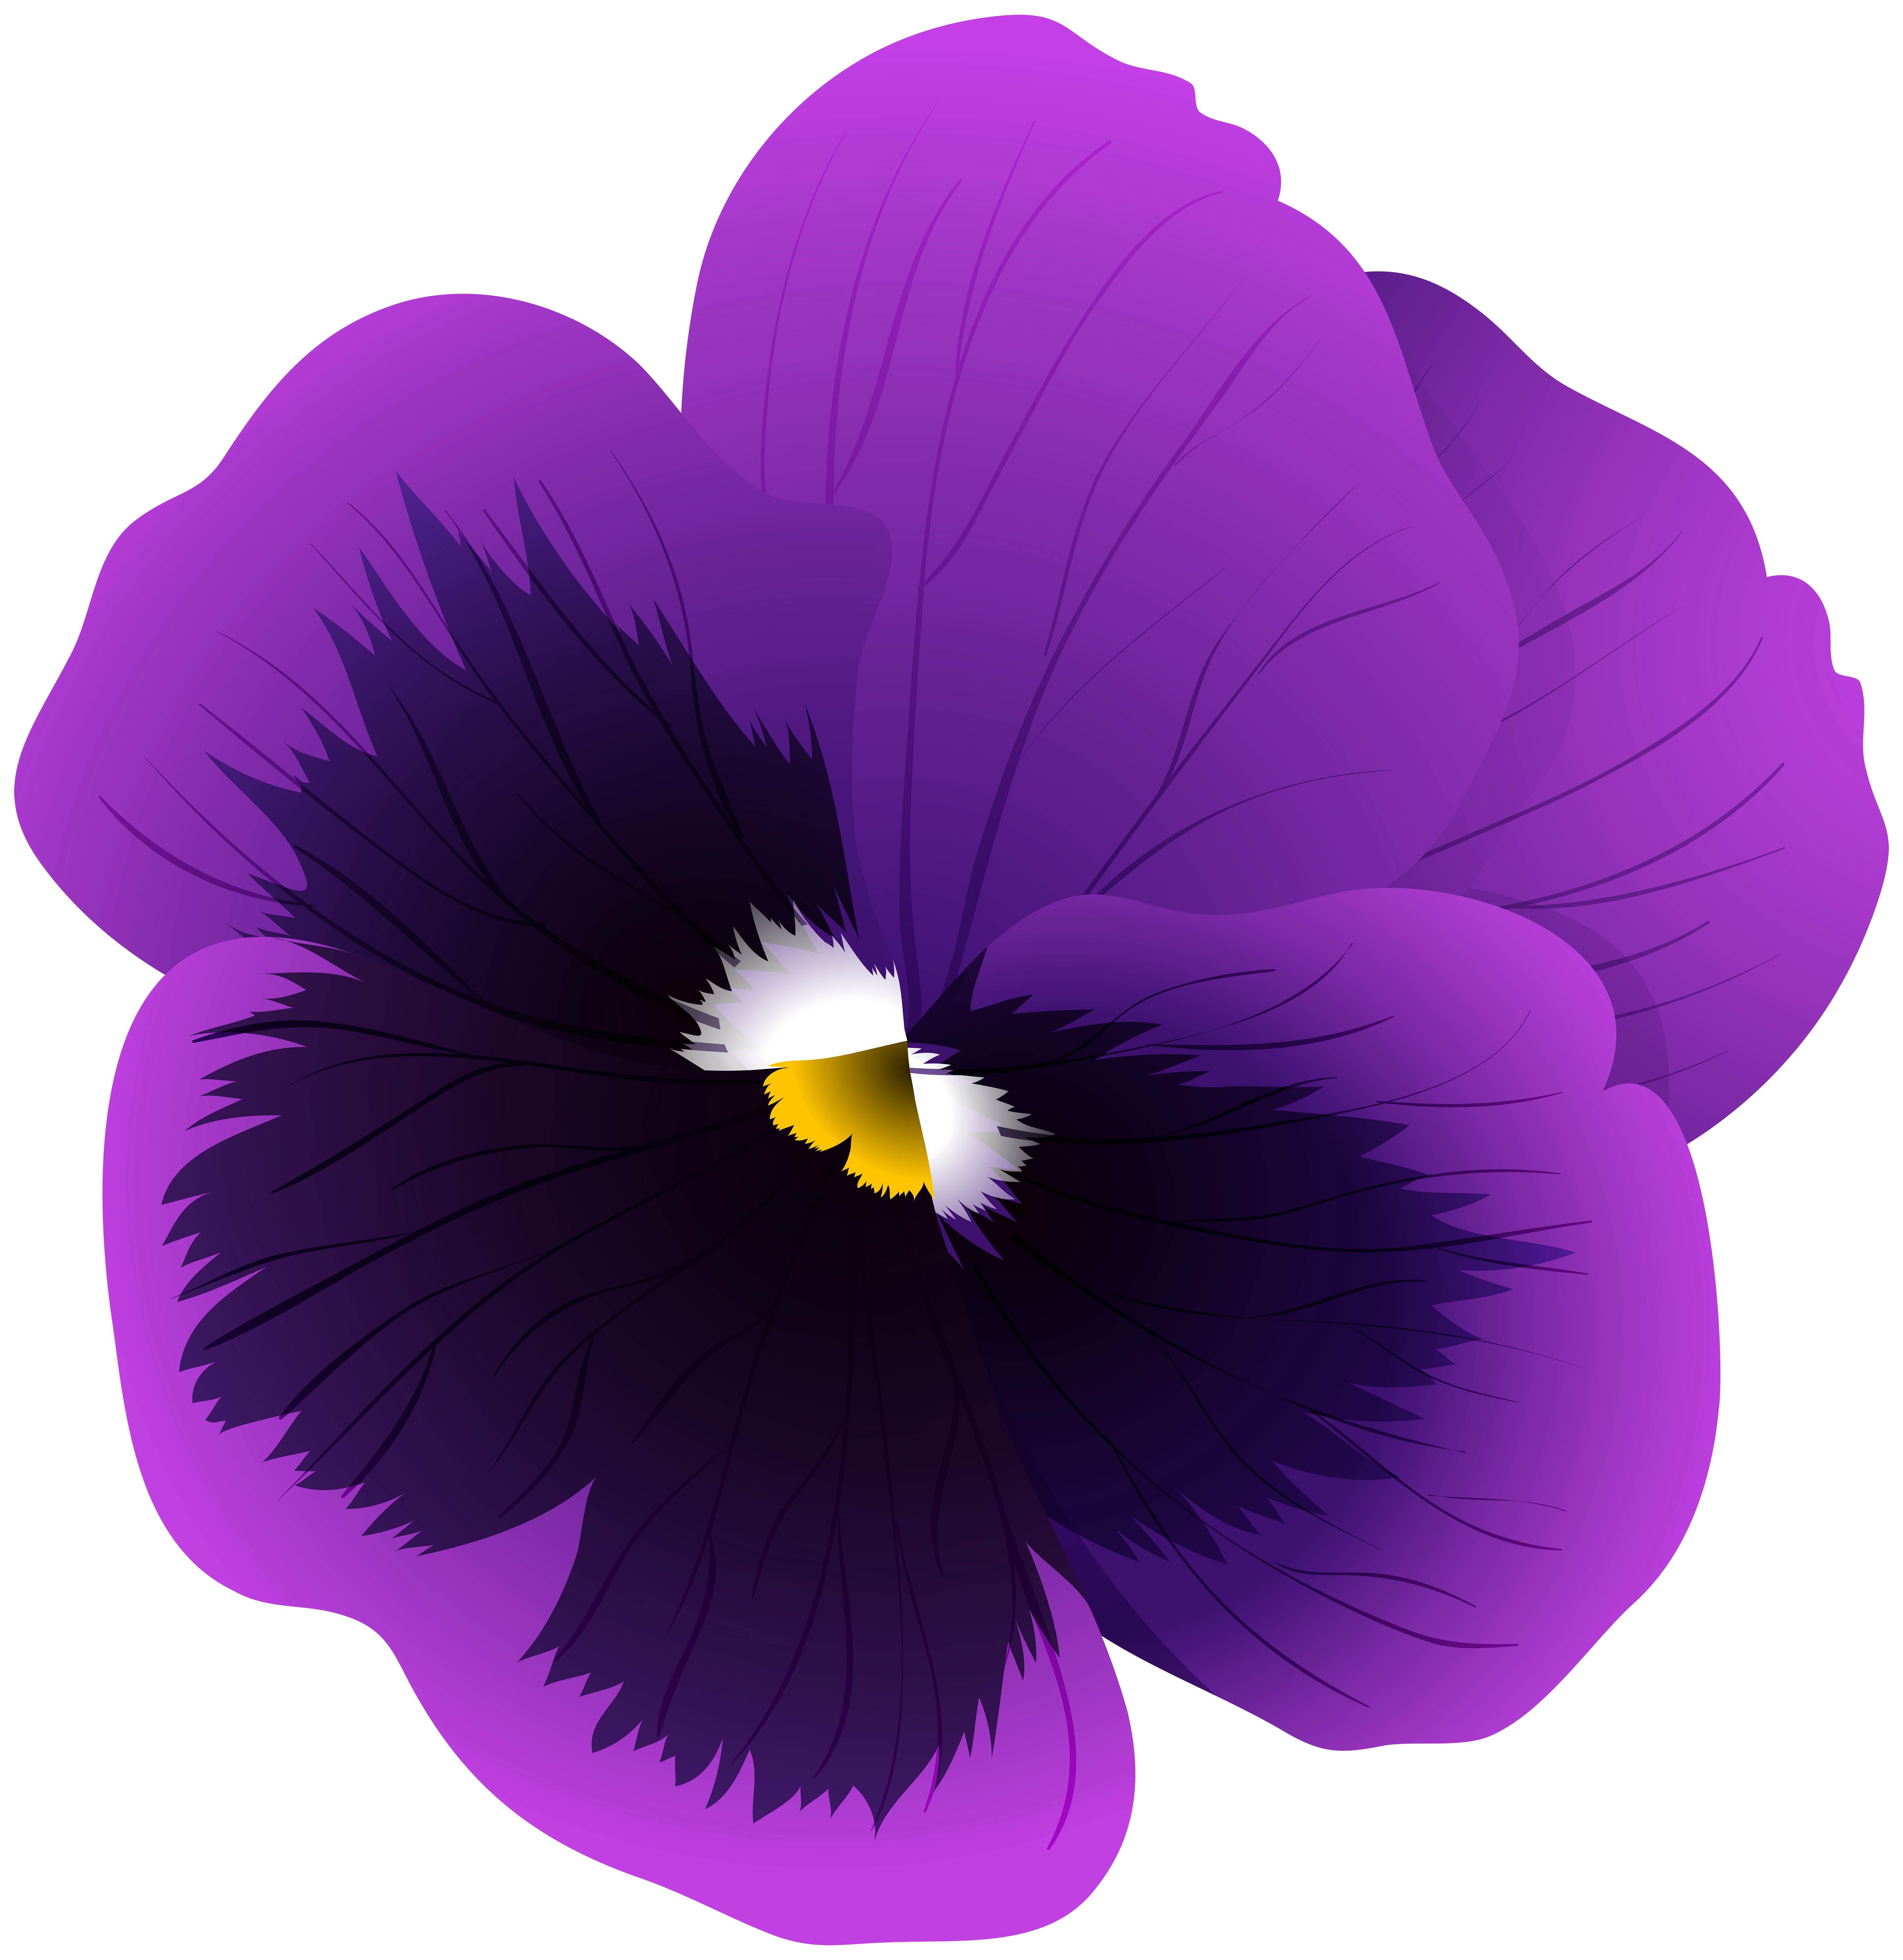 Violet flower clipart free clip free library Violet Flower Transparent PNG Clip Art Image | Gallery ... clip free library